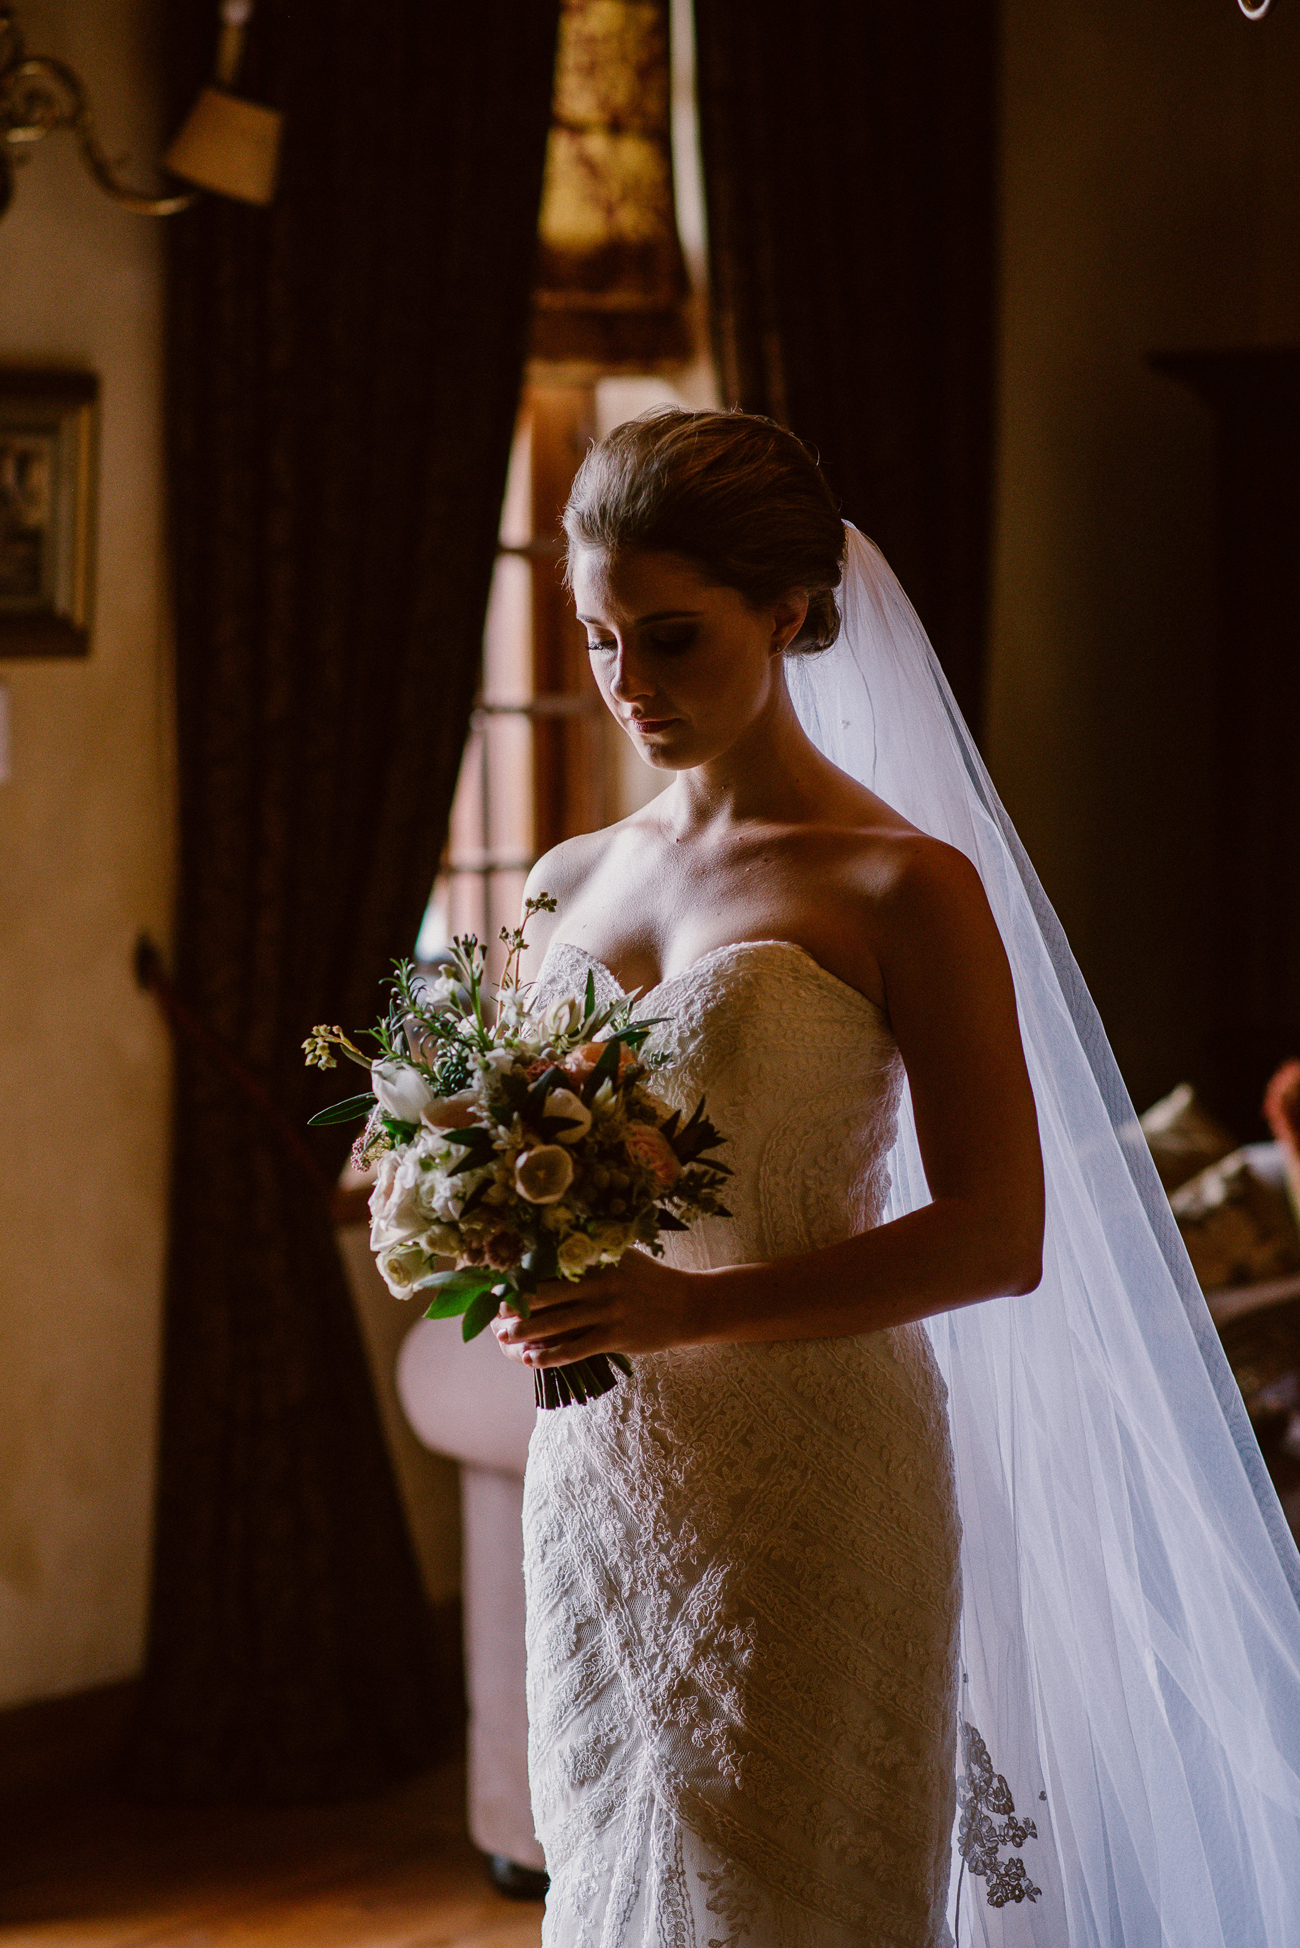 Bride in Heirloom Veil | Image: Lad & Lass Photography